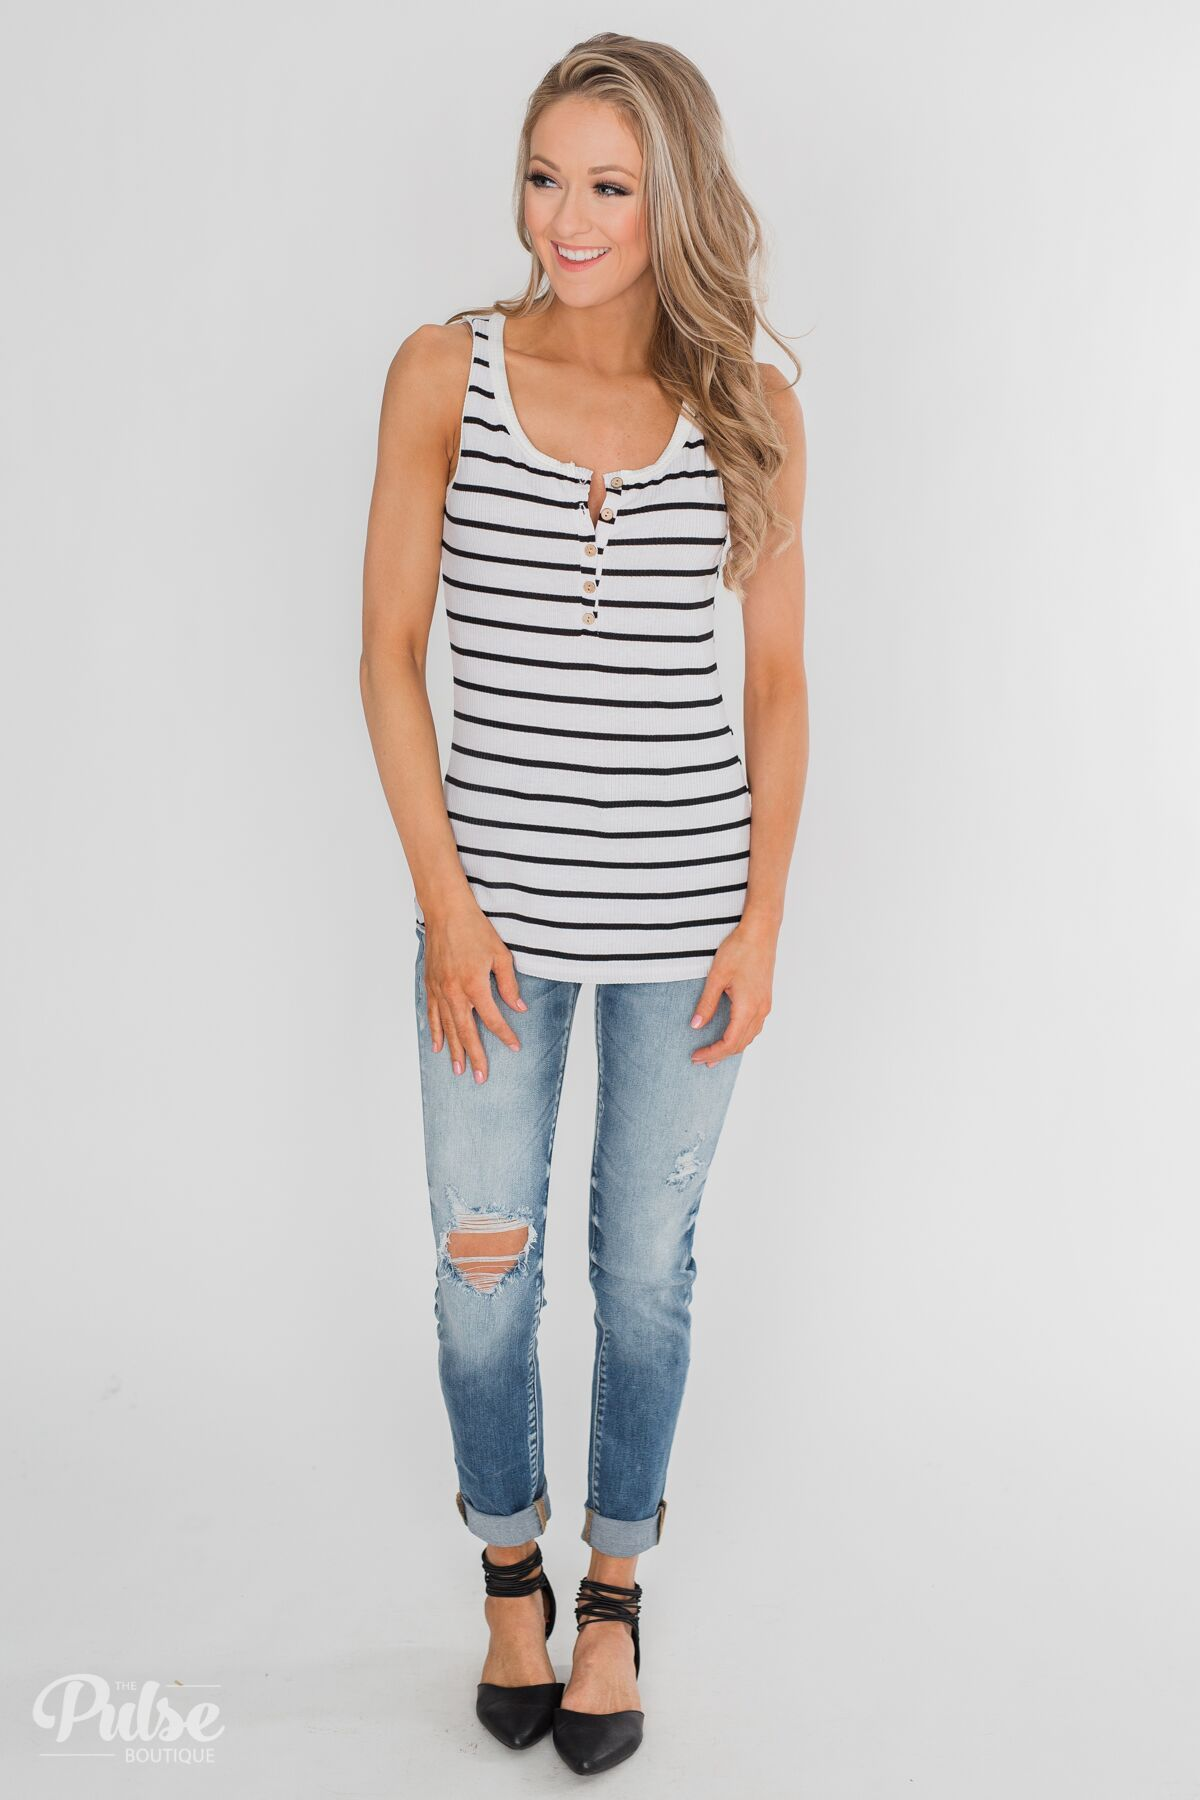 Always Need You 5-Button Henley Tank - Black & White Striped Outfit